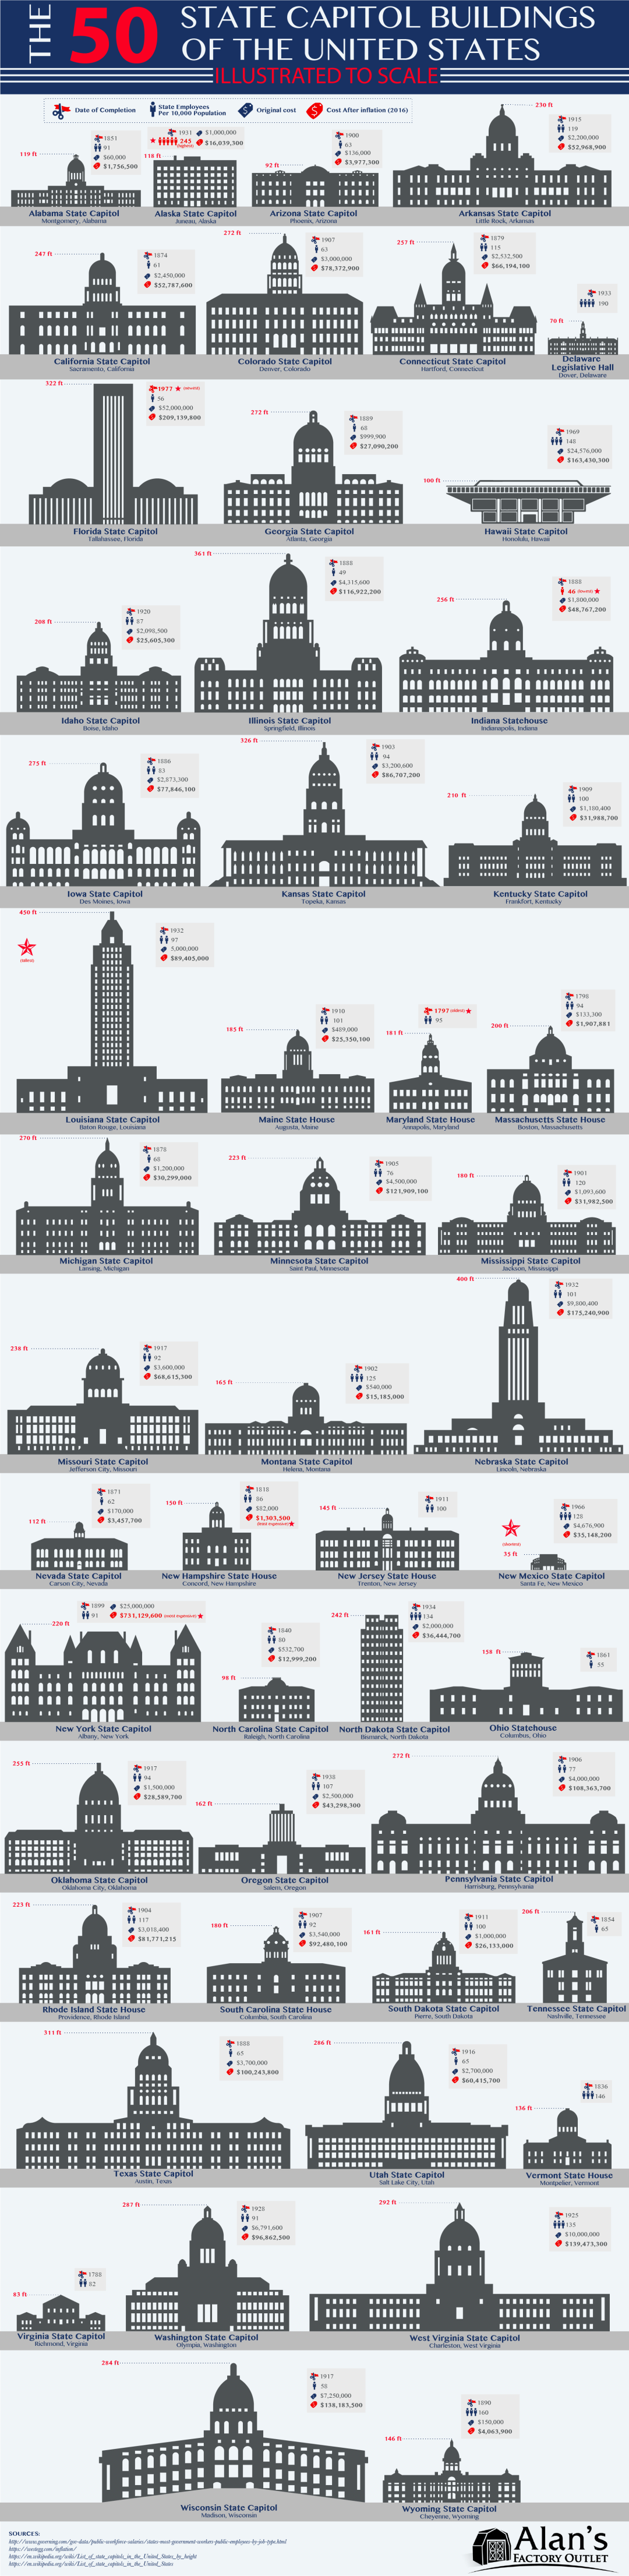 state-capitol-buildings-illustrated-to-scale-5_large